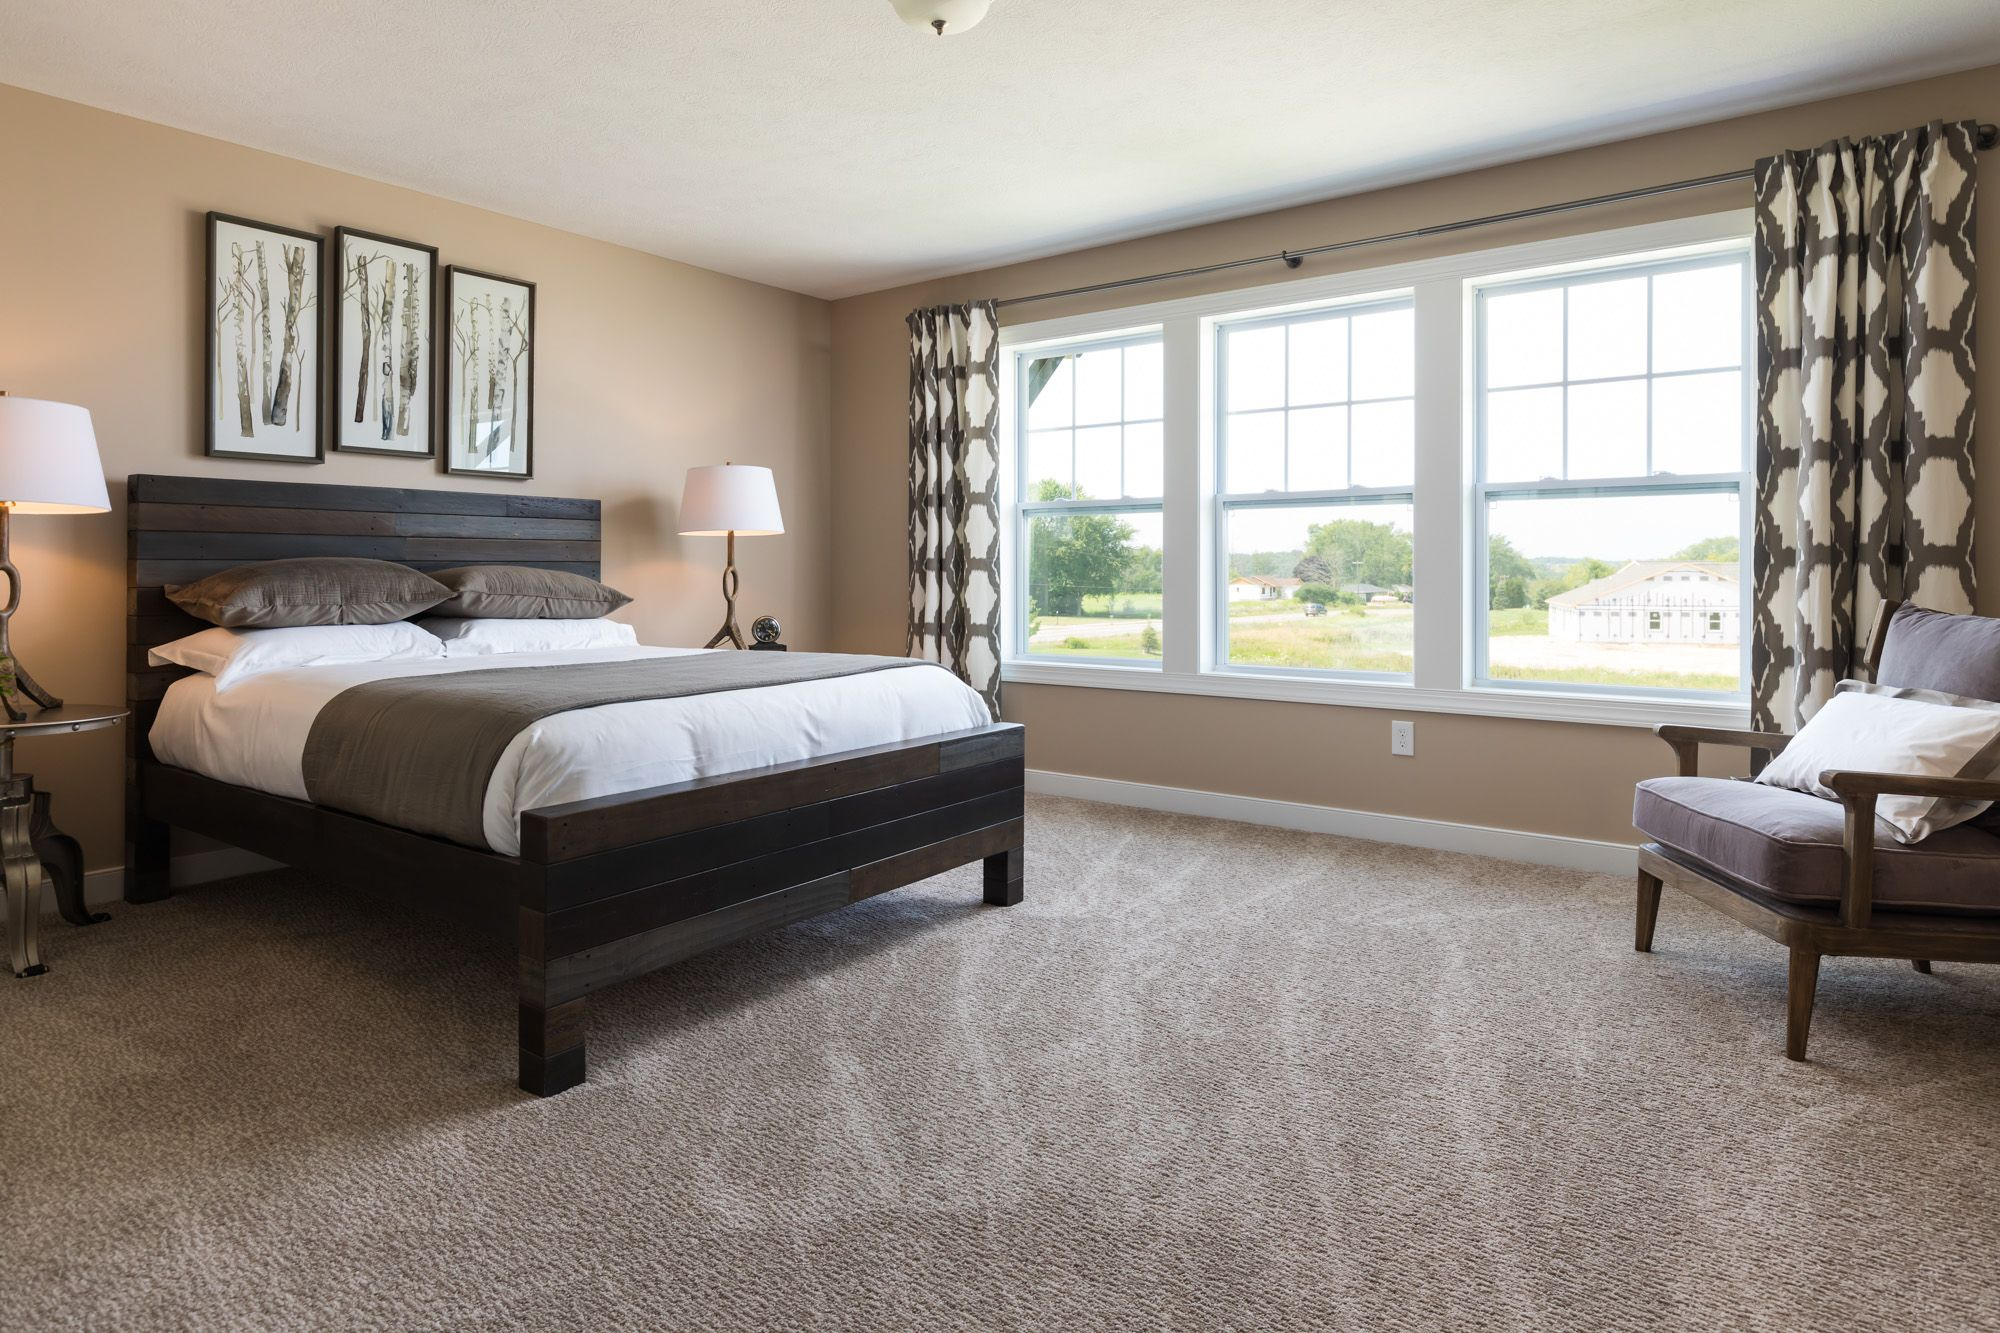 Bedroom featured in the Elements 2600 By Allen Edwin Homes in South Bend, IN